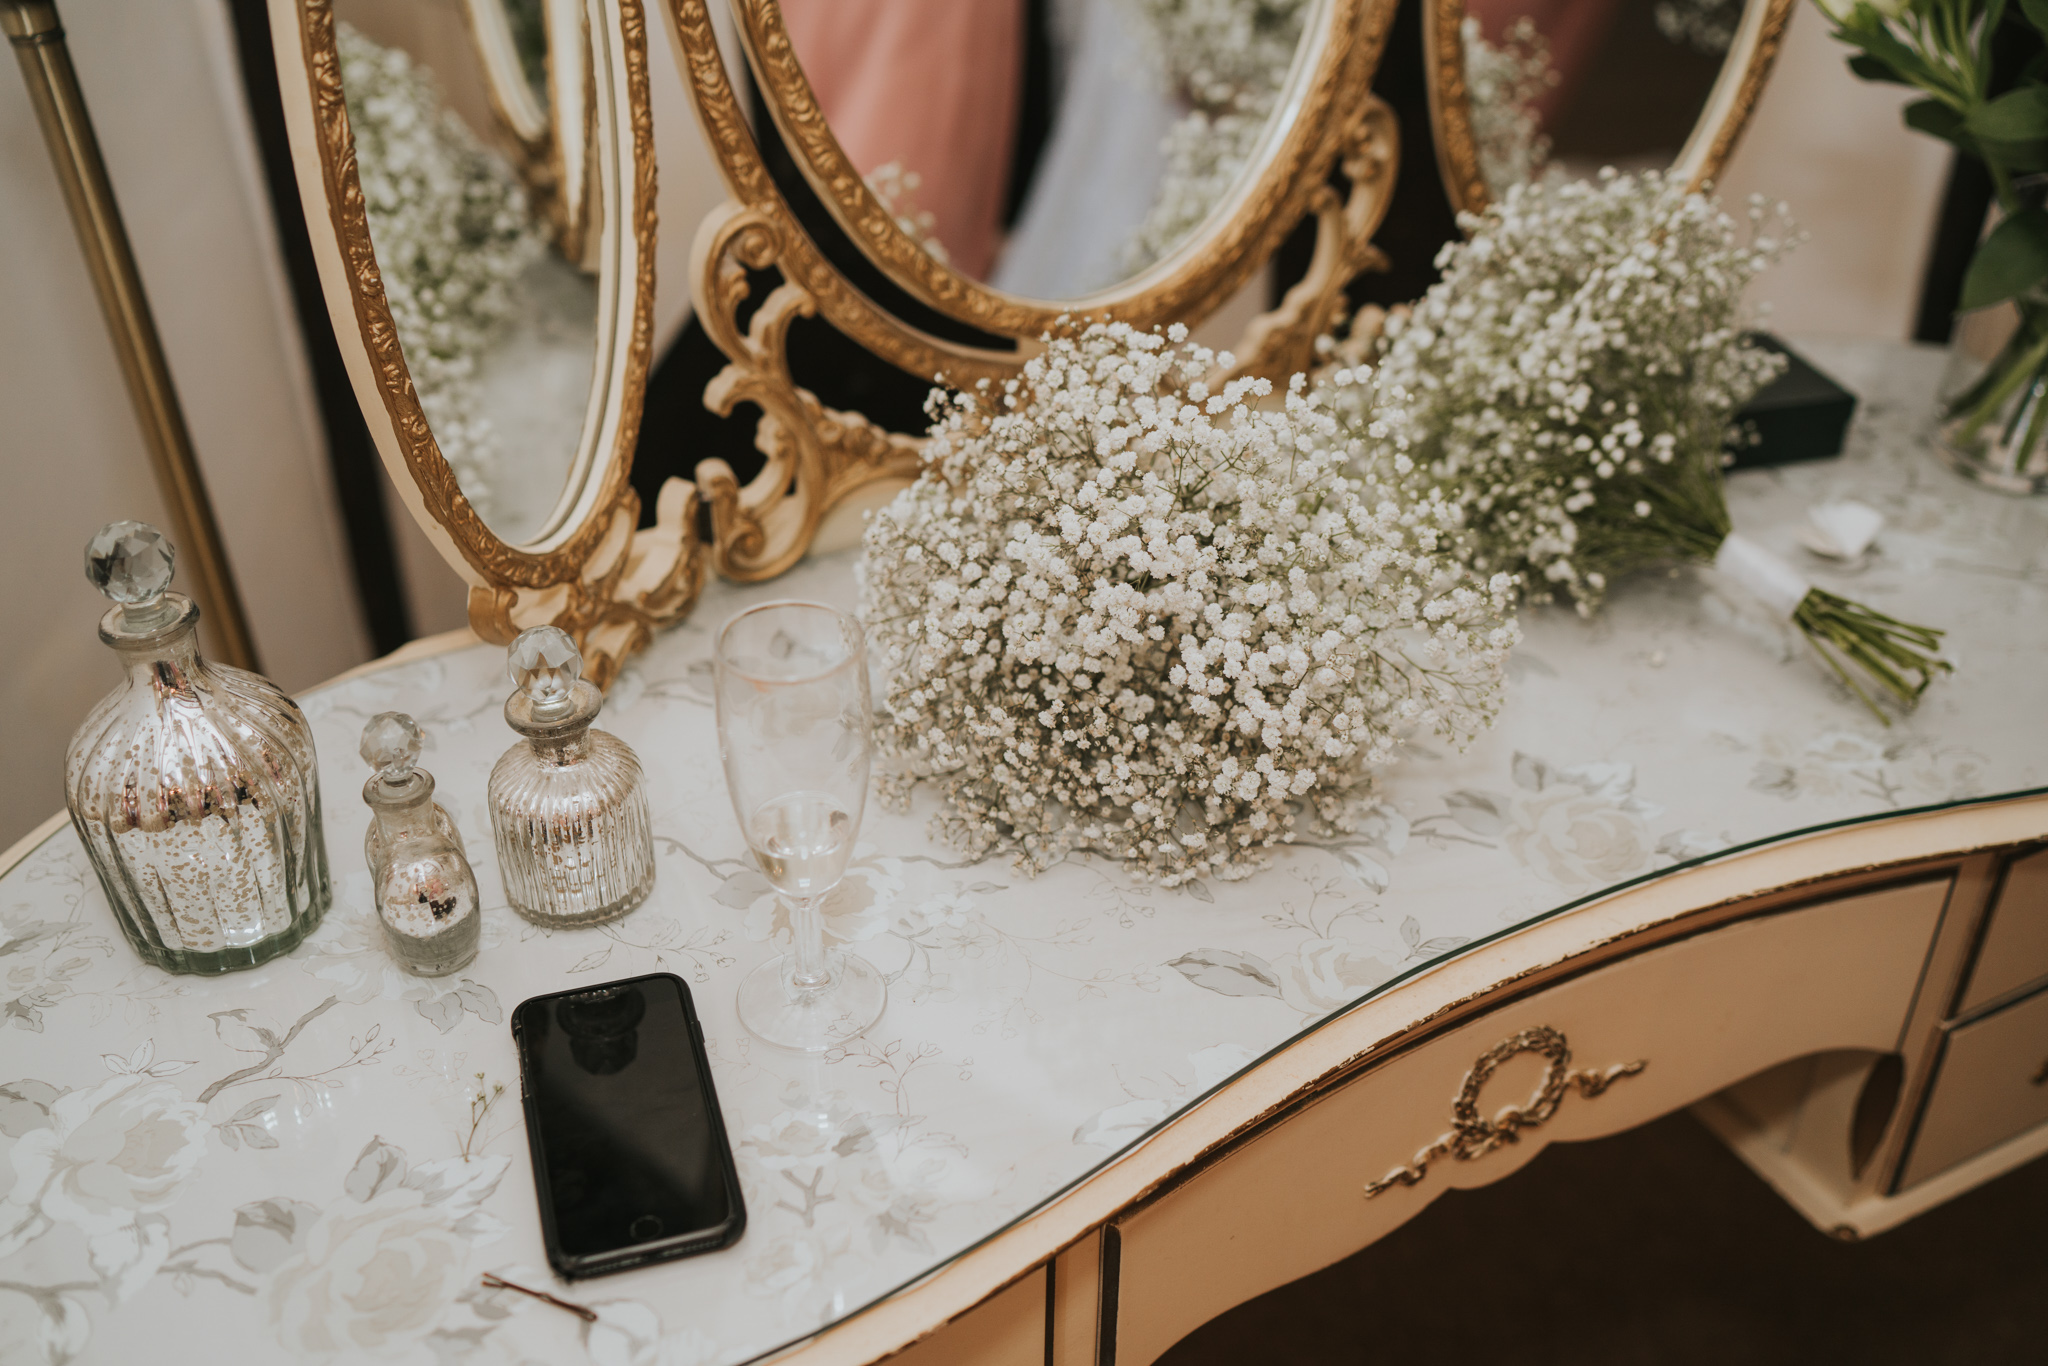 Sophie-Christian-Prested-Hall-DIY-Boho-Outdoor-Wedding-Grace-Elizabeth-Alternative-Wedding-Photographer-Colchester-Essex (17 of 113).jpg